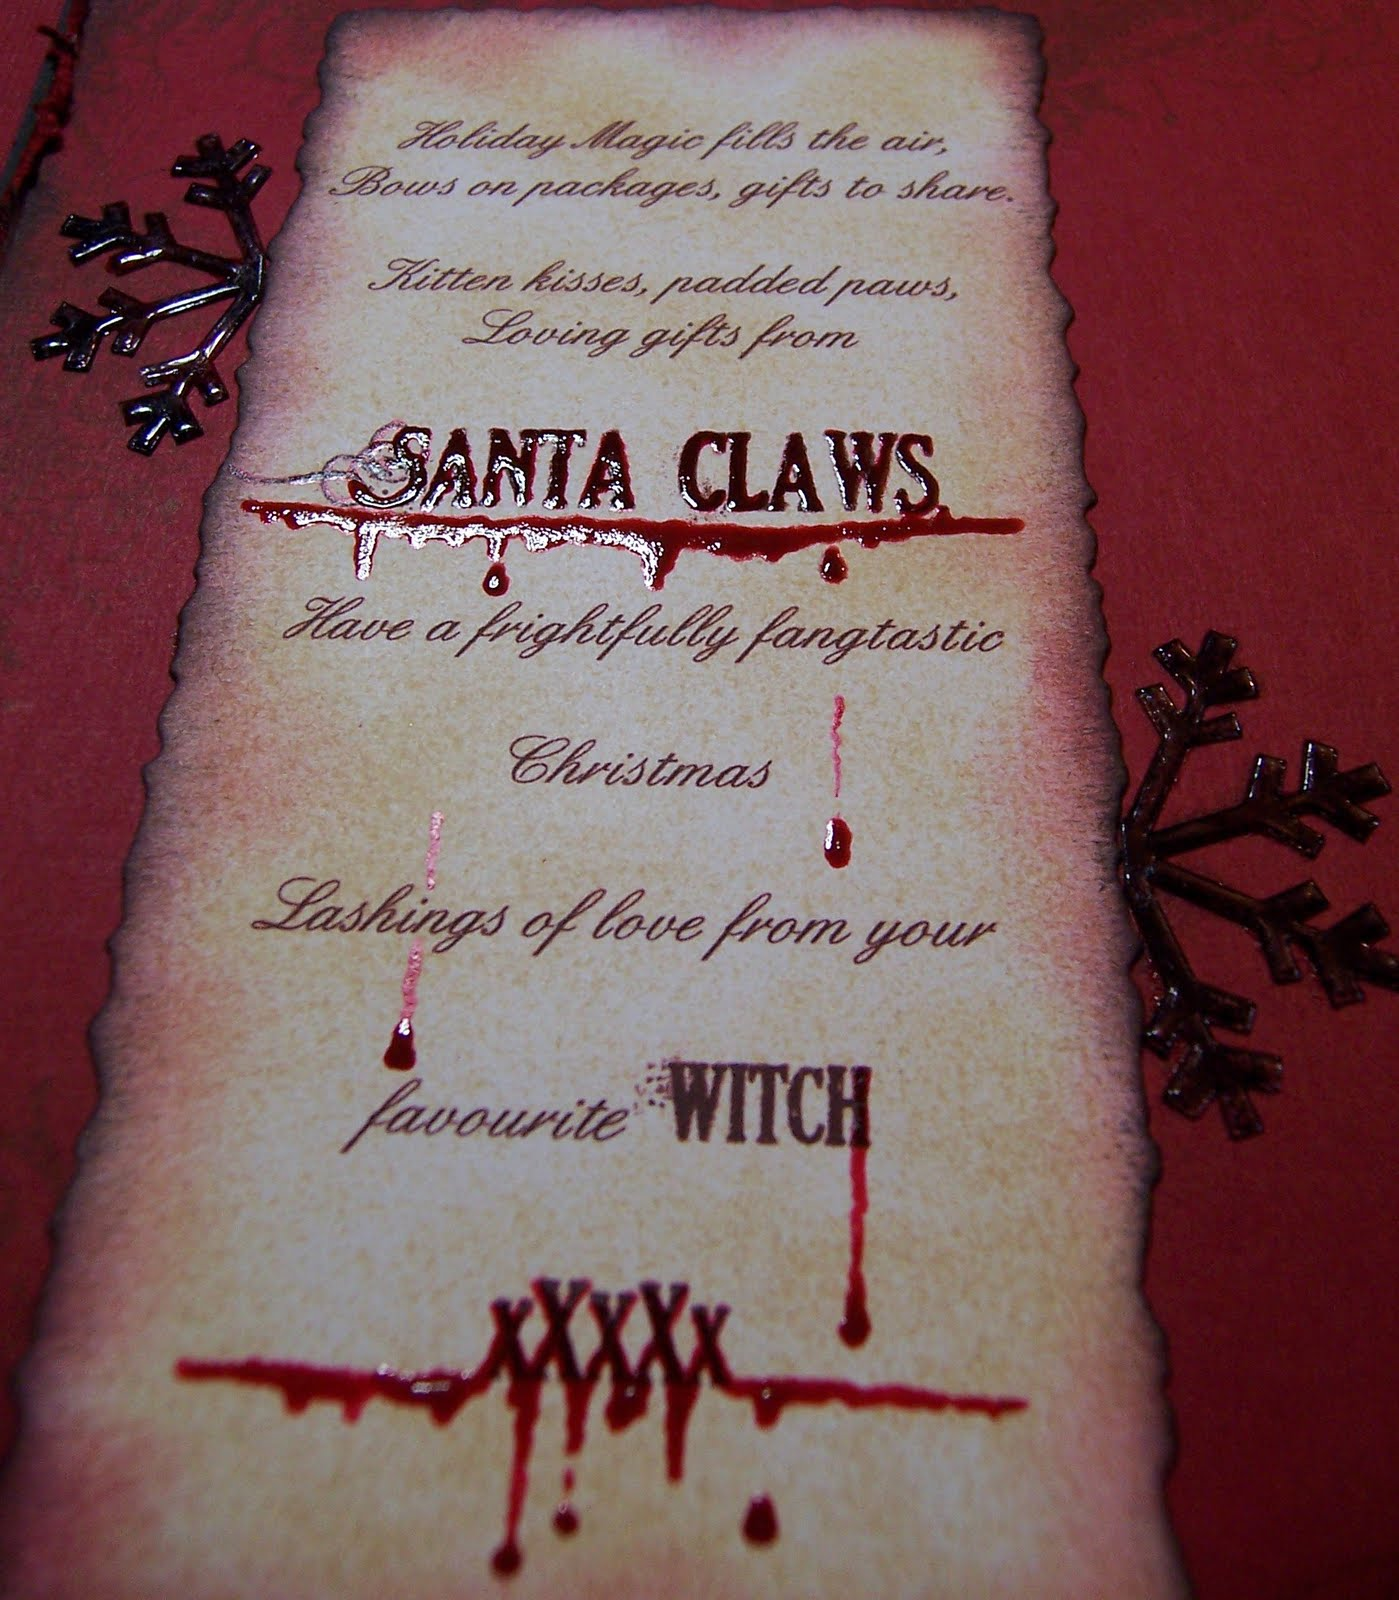 the vampire santa is borrowed from vampire wars a game i play on facebook thank you for looking